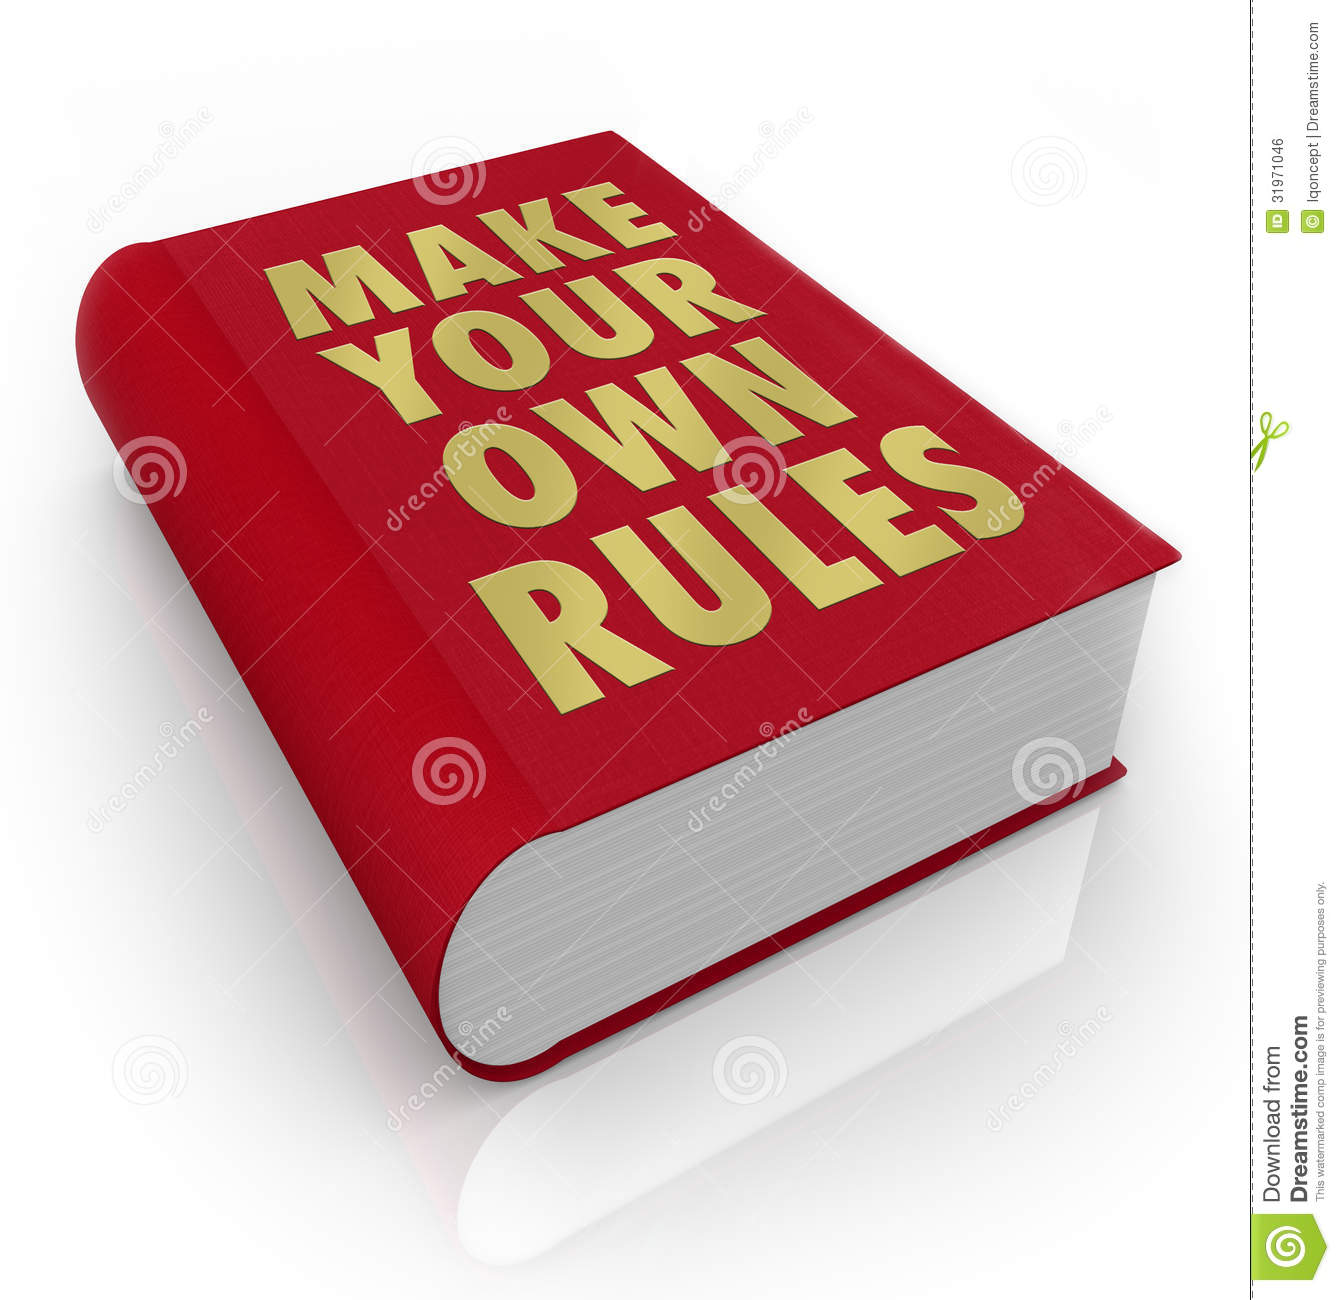 Make Your Own Rules Book Take Charge Of Life Royalty Free